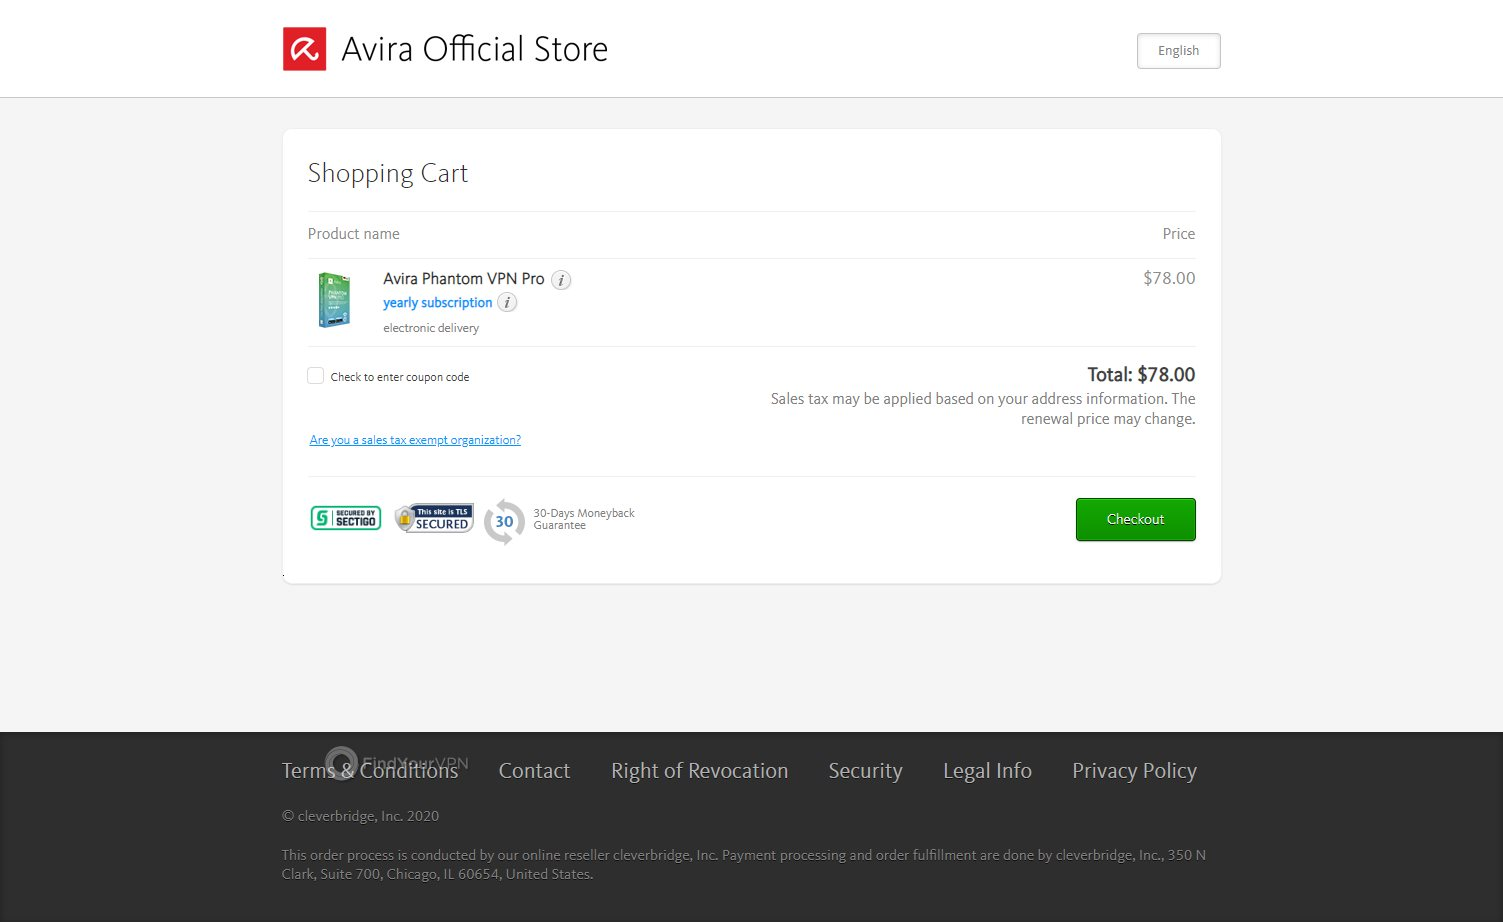 The checkout cart of Avira Phantom VPN